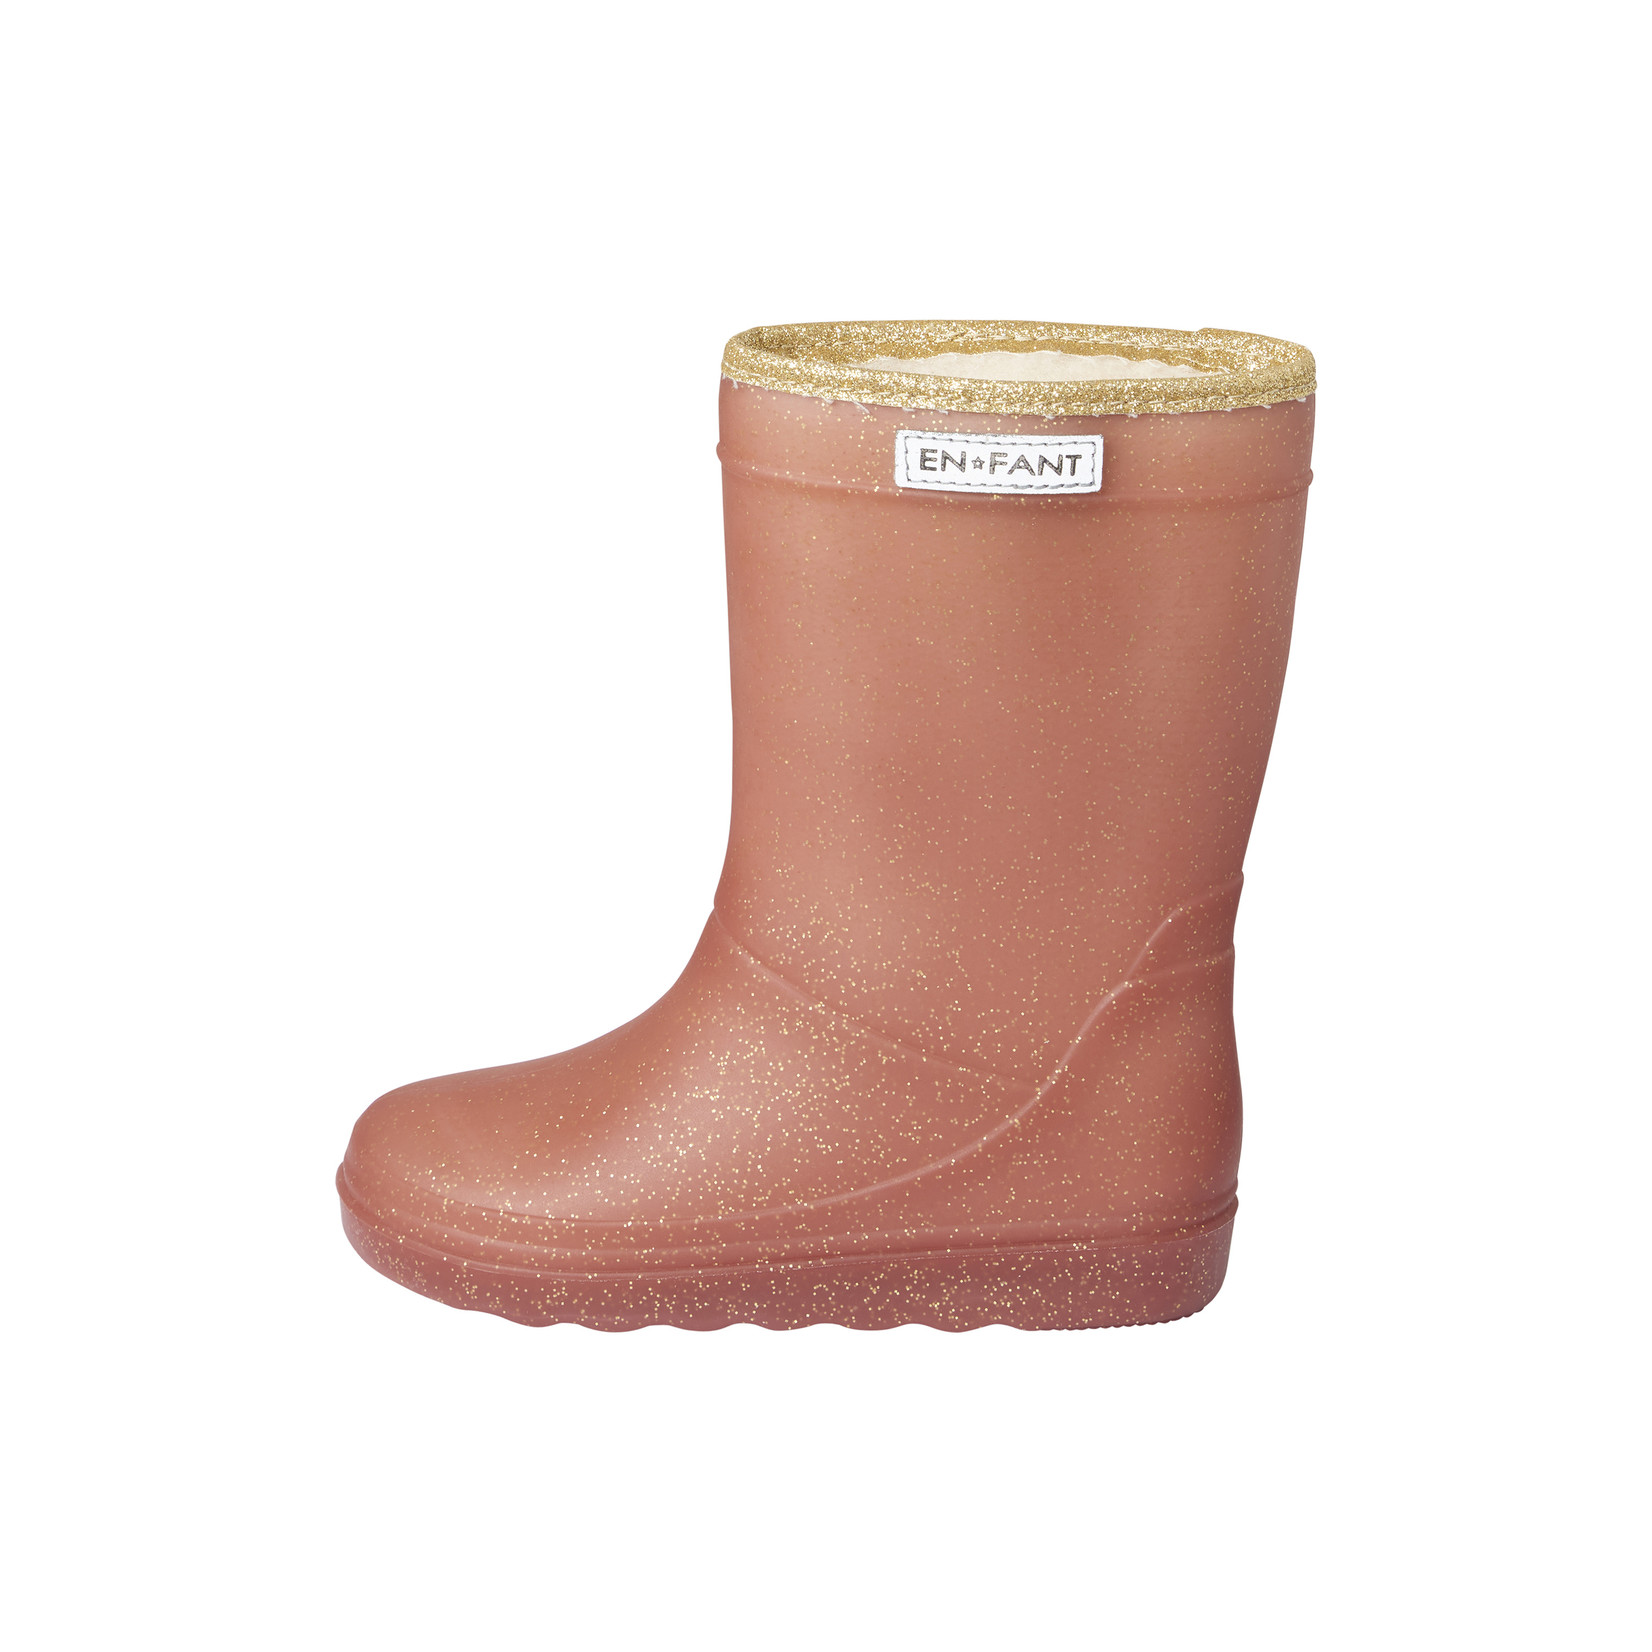 En Fant Thermo Boots Glitter Metalic Rose